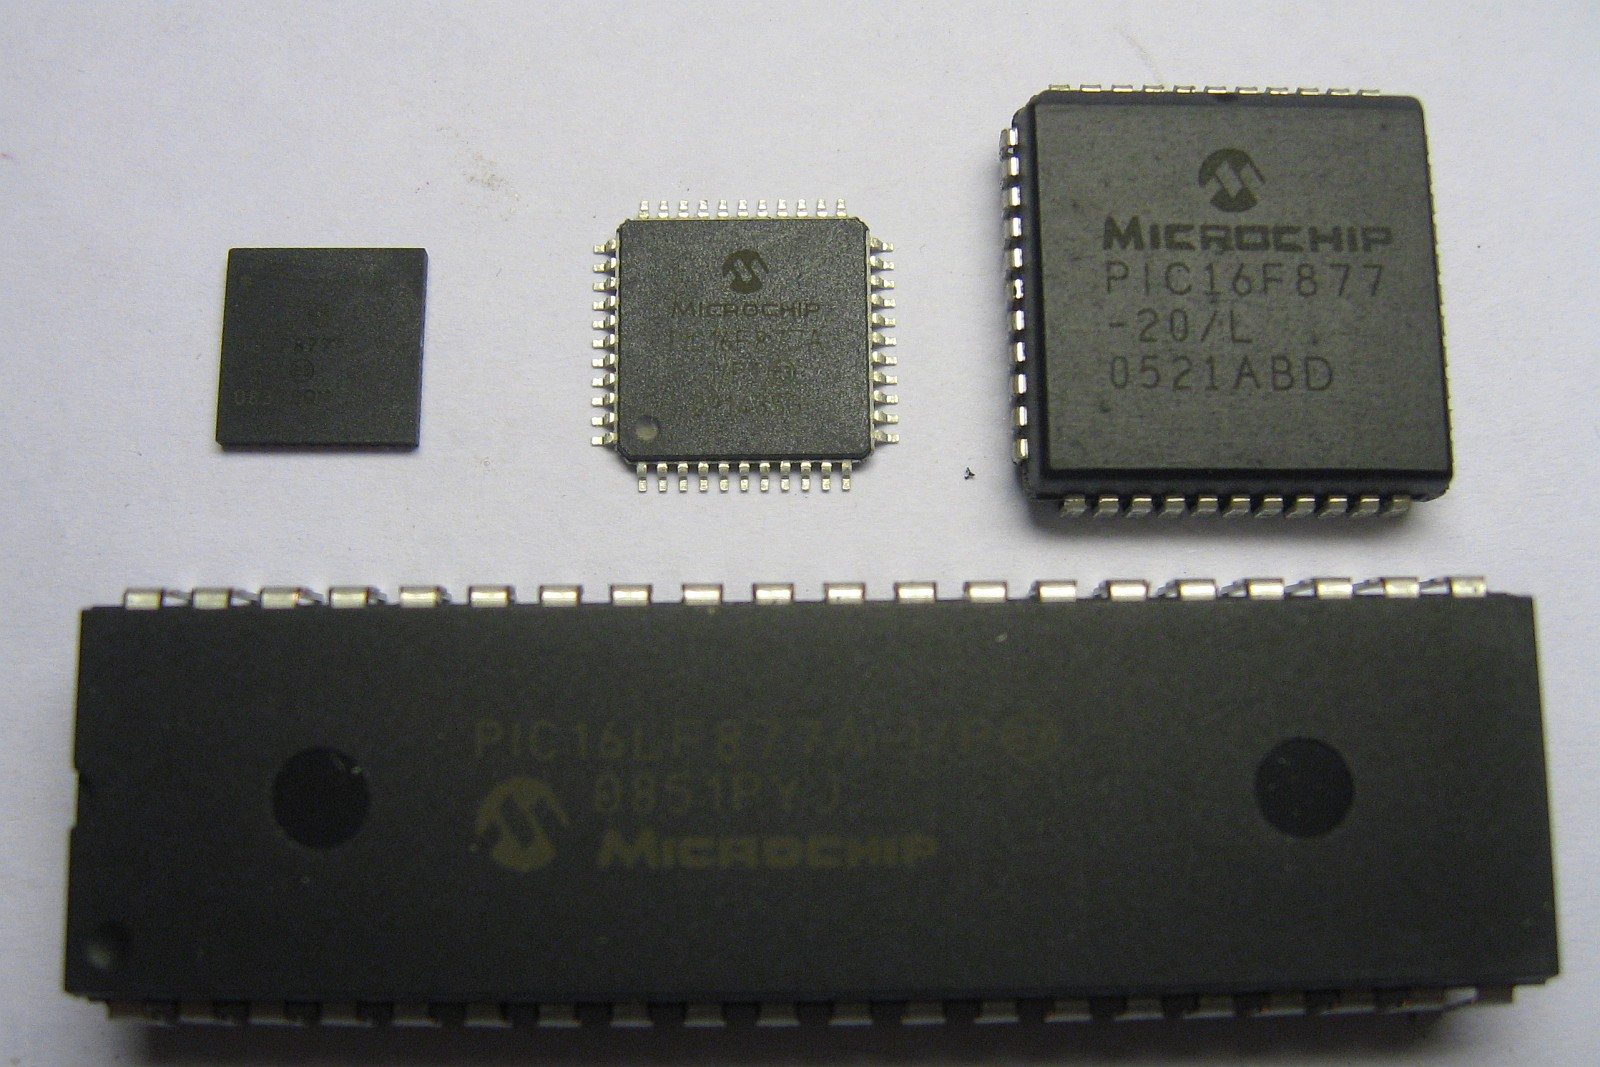 8051 Microcontroller Block Diagram And Construction Of 8051 Wiki